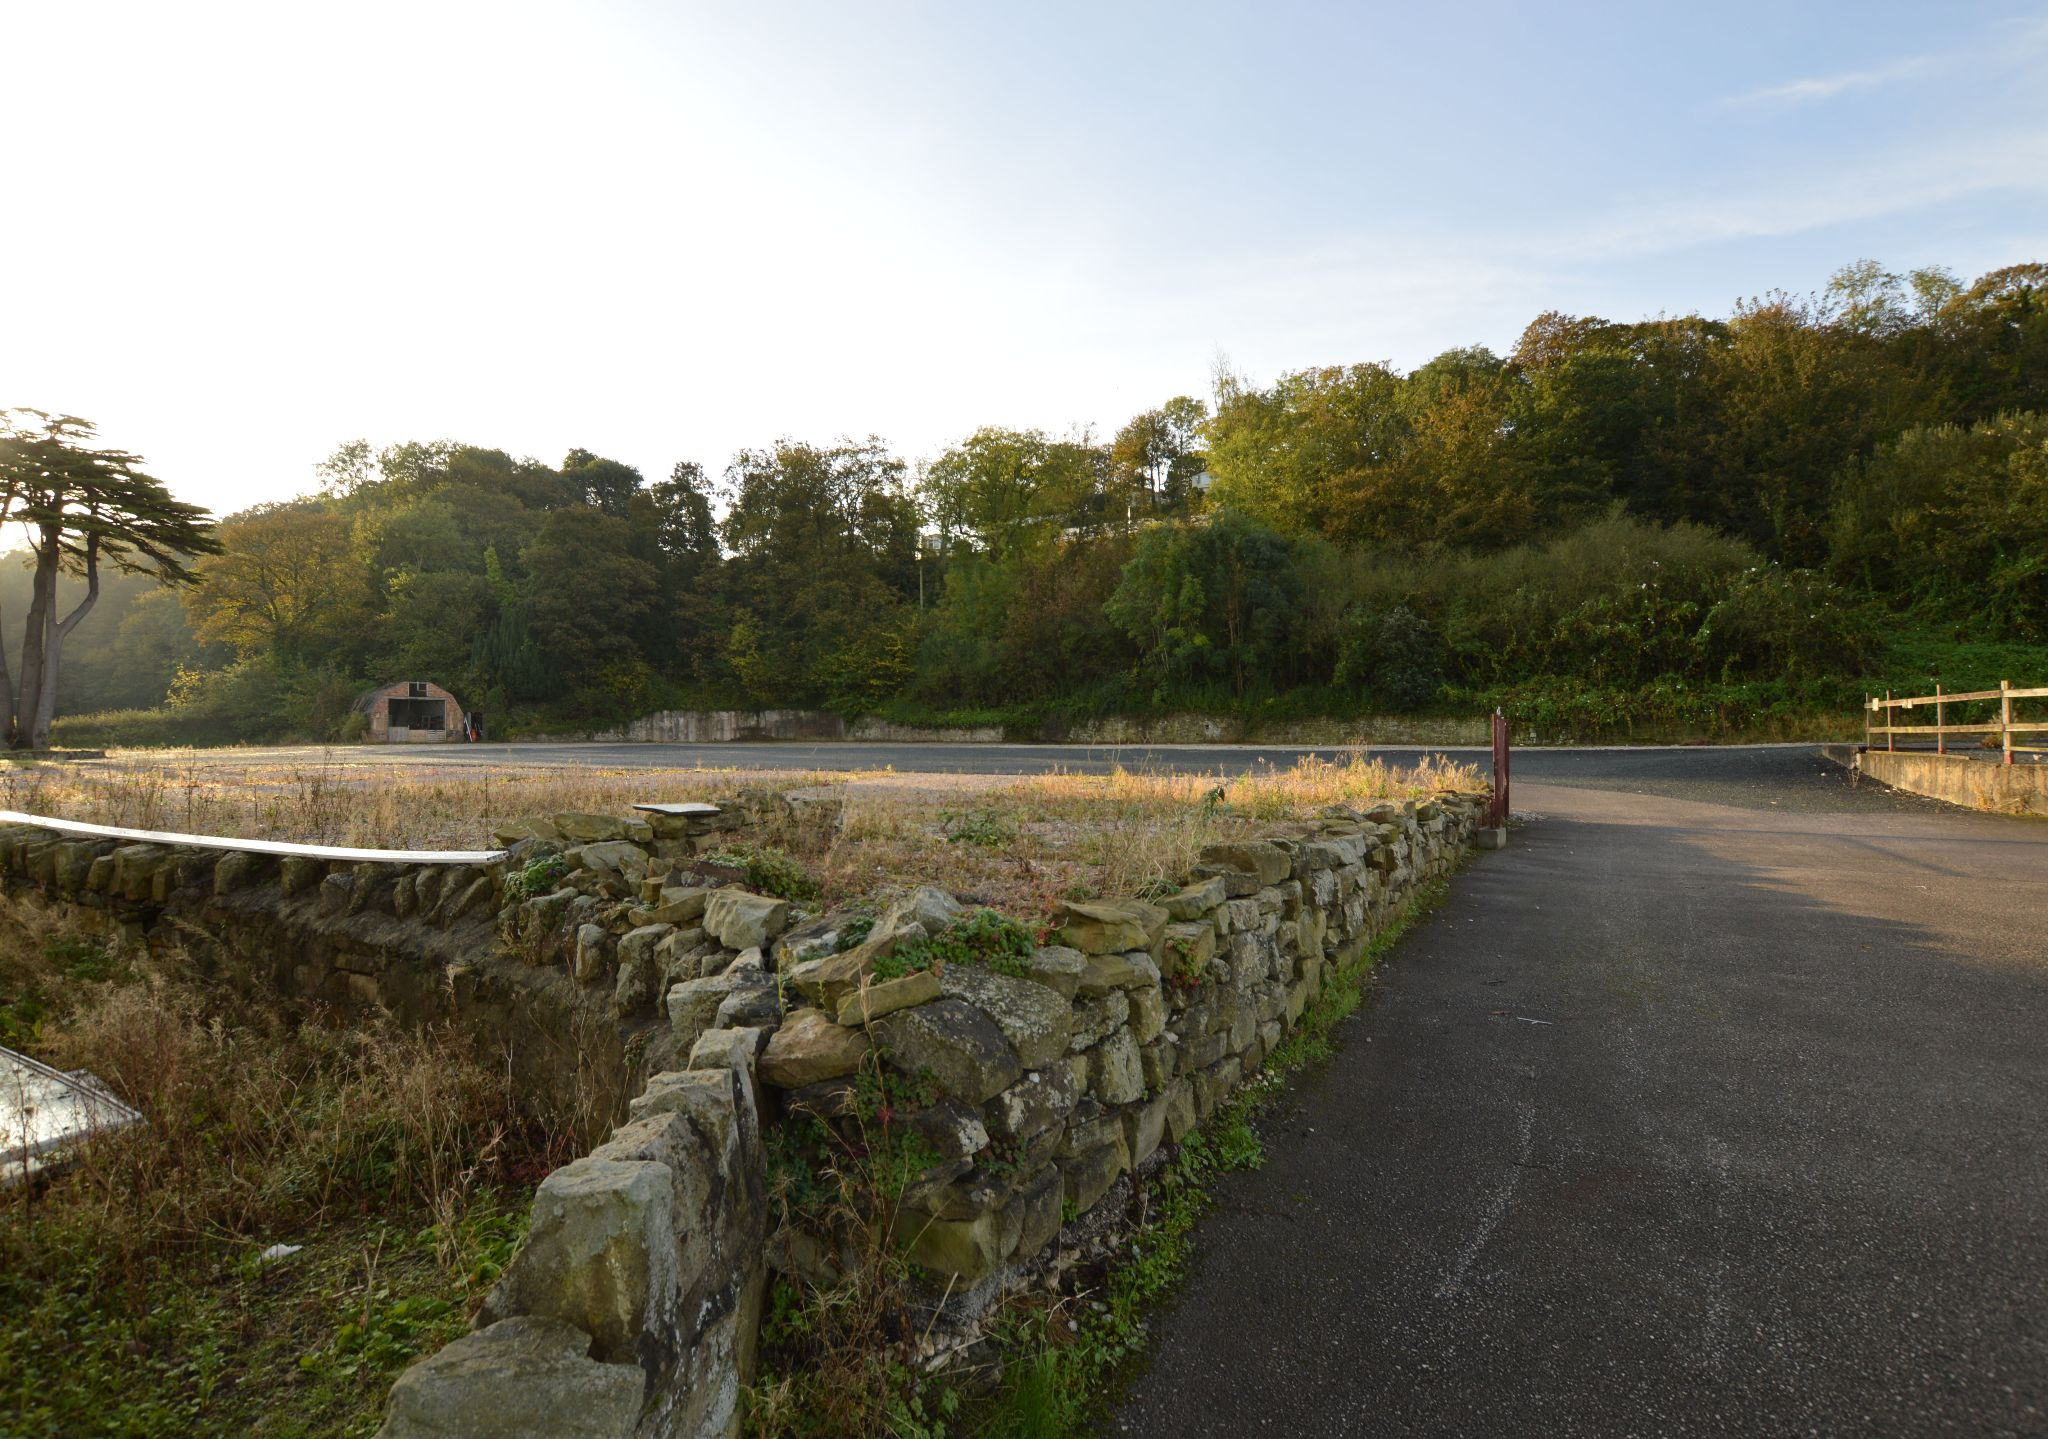 Land For Sale in Holywell - Land